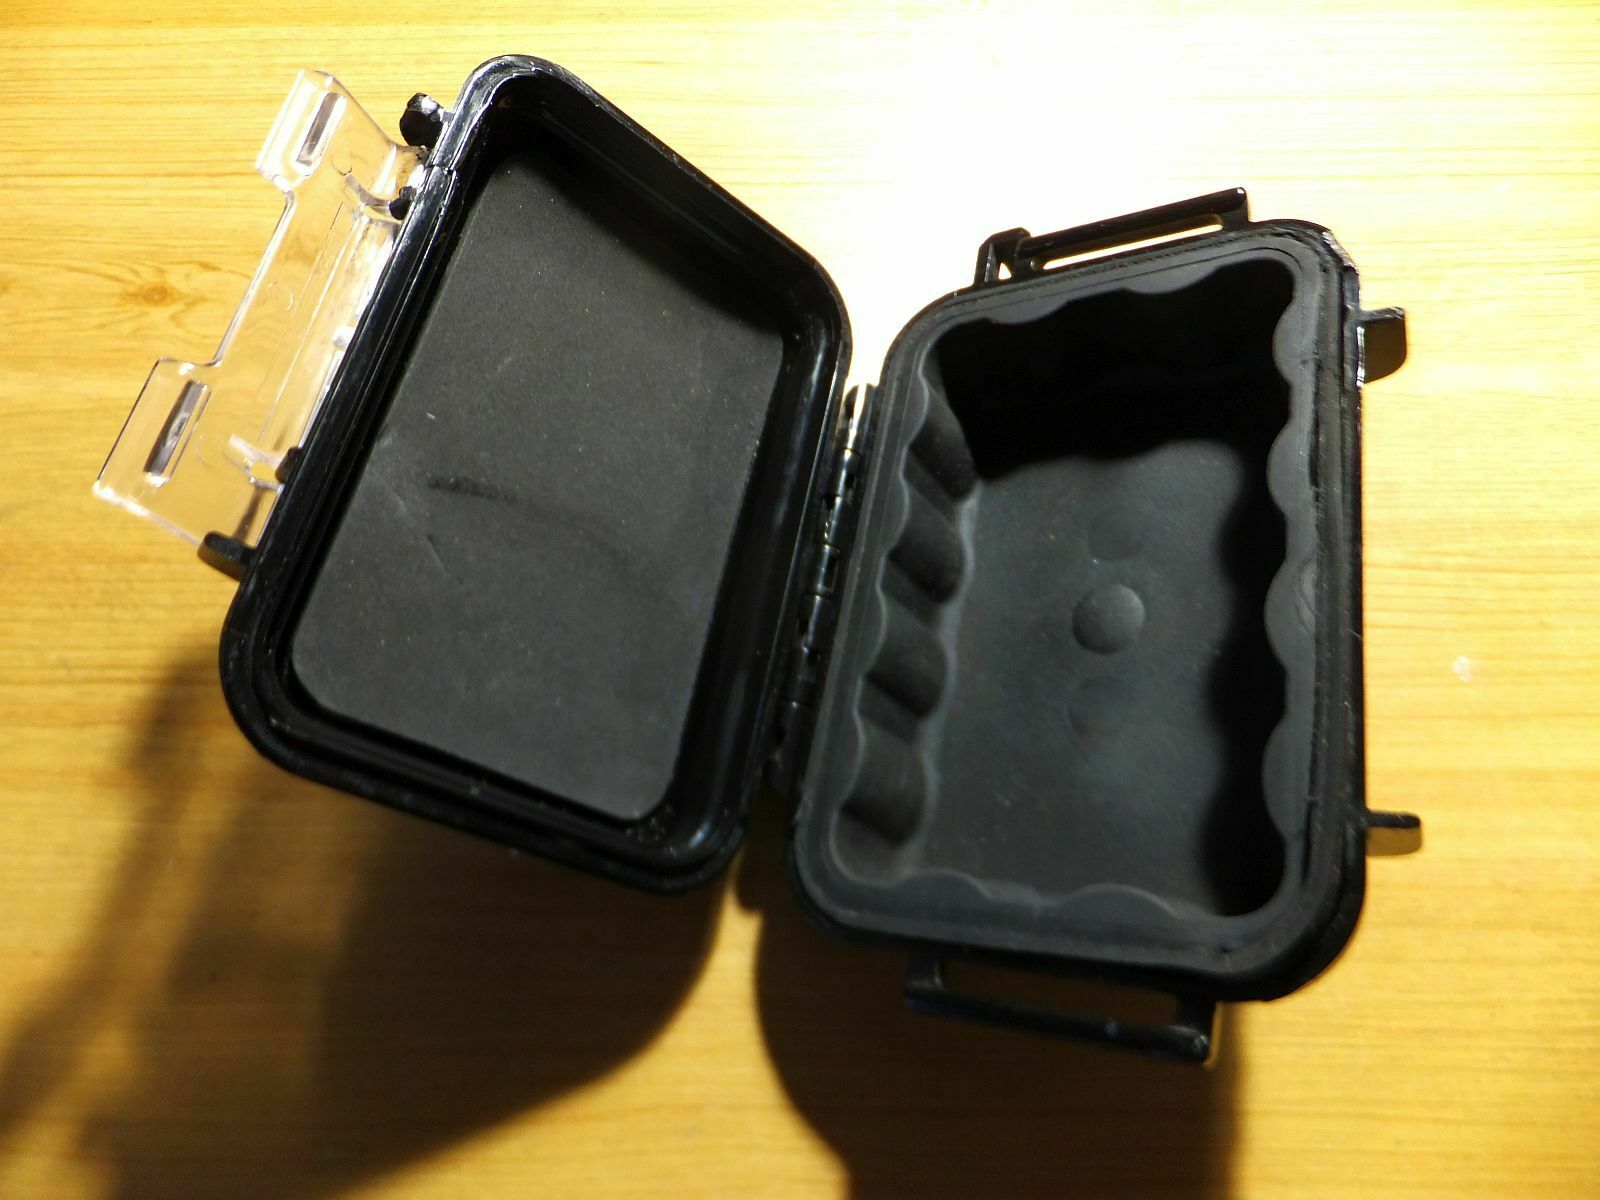 -- Pelican Box Type 1010 Black with 2 Magnets